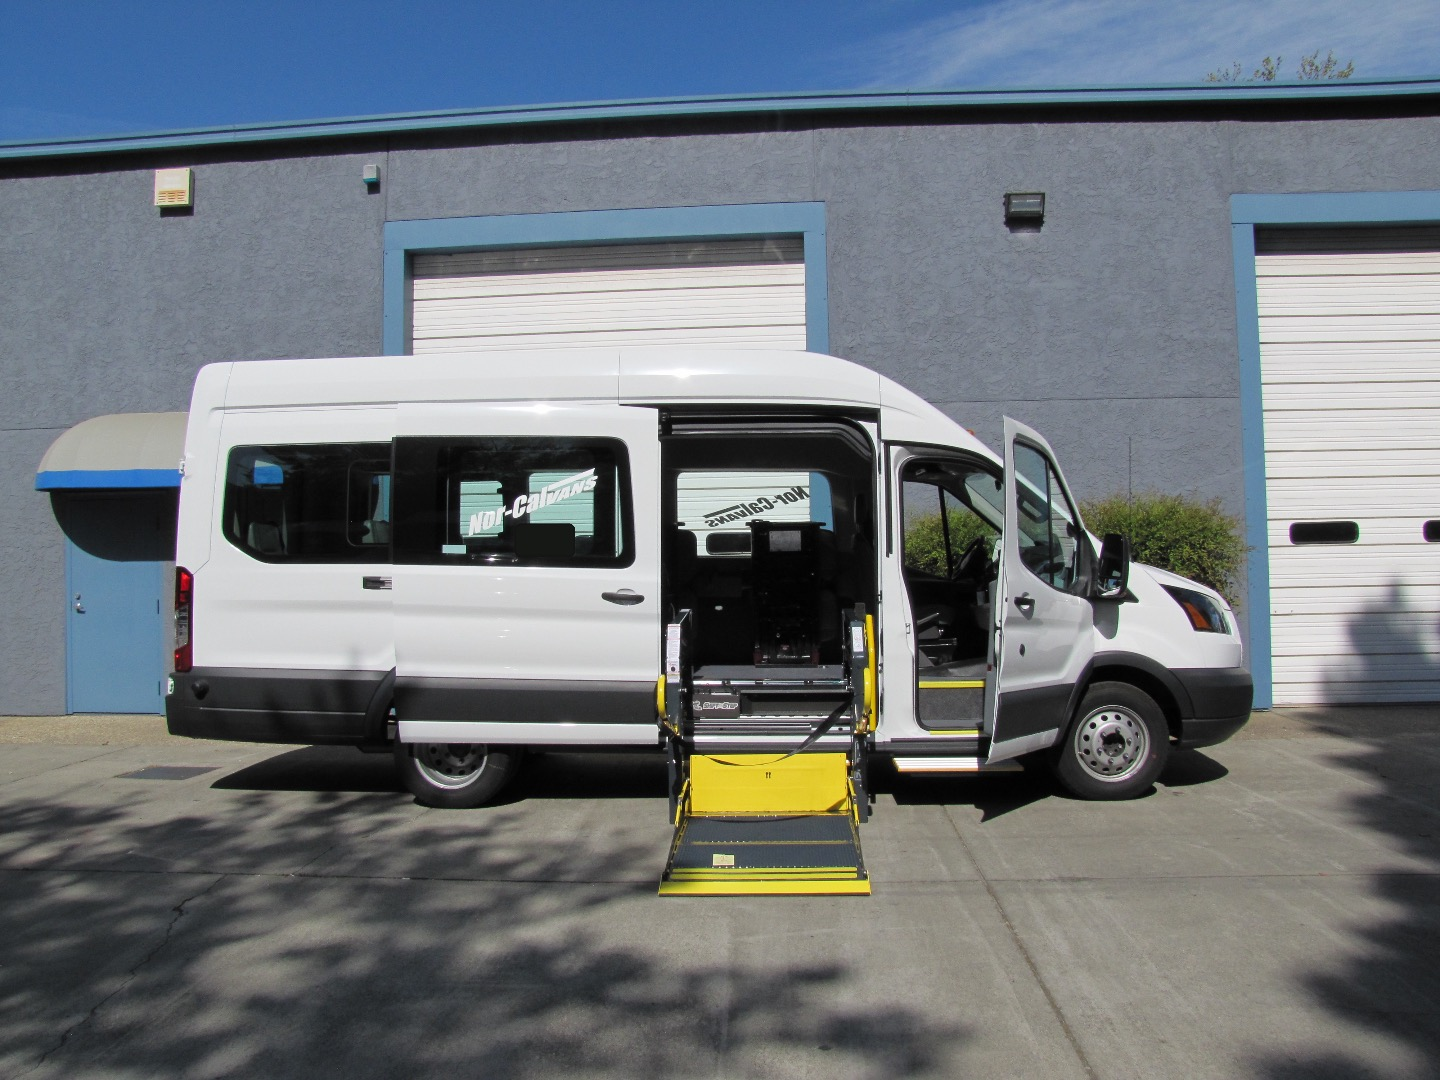 2018 Ford Transit 350 HD High Roof DRW 4x2, Wheelchair Van with Shift N' Step and Curbside Access #KB06570 - photo 1